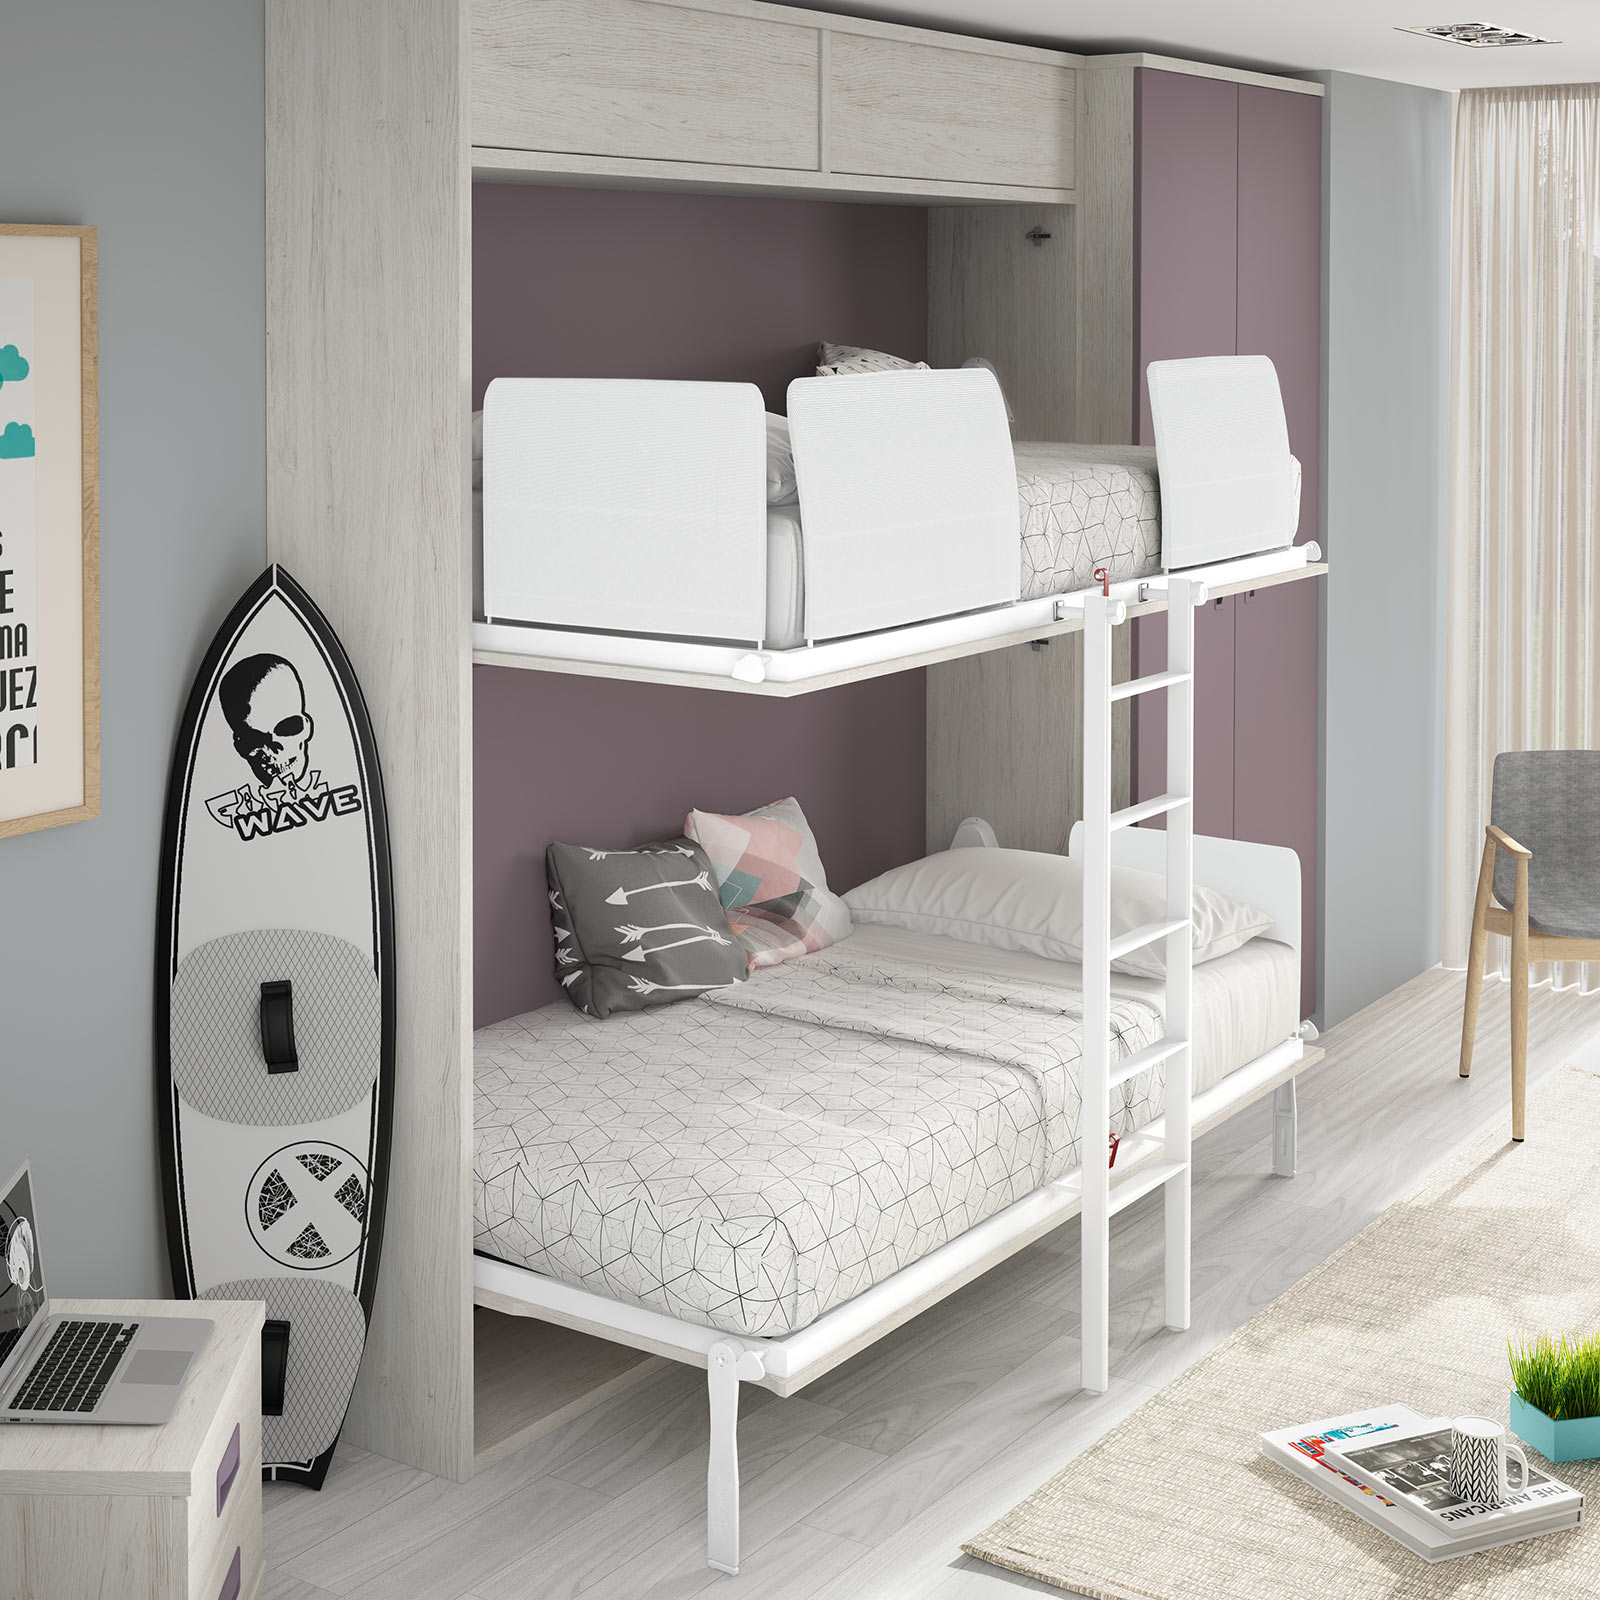 Space wallbed bunk bed the london wallbed company - Muebles con cama plegable ...